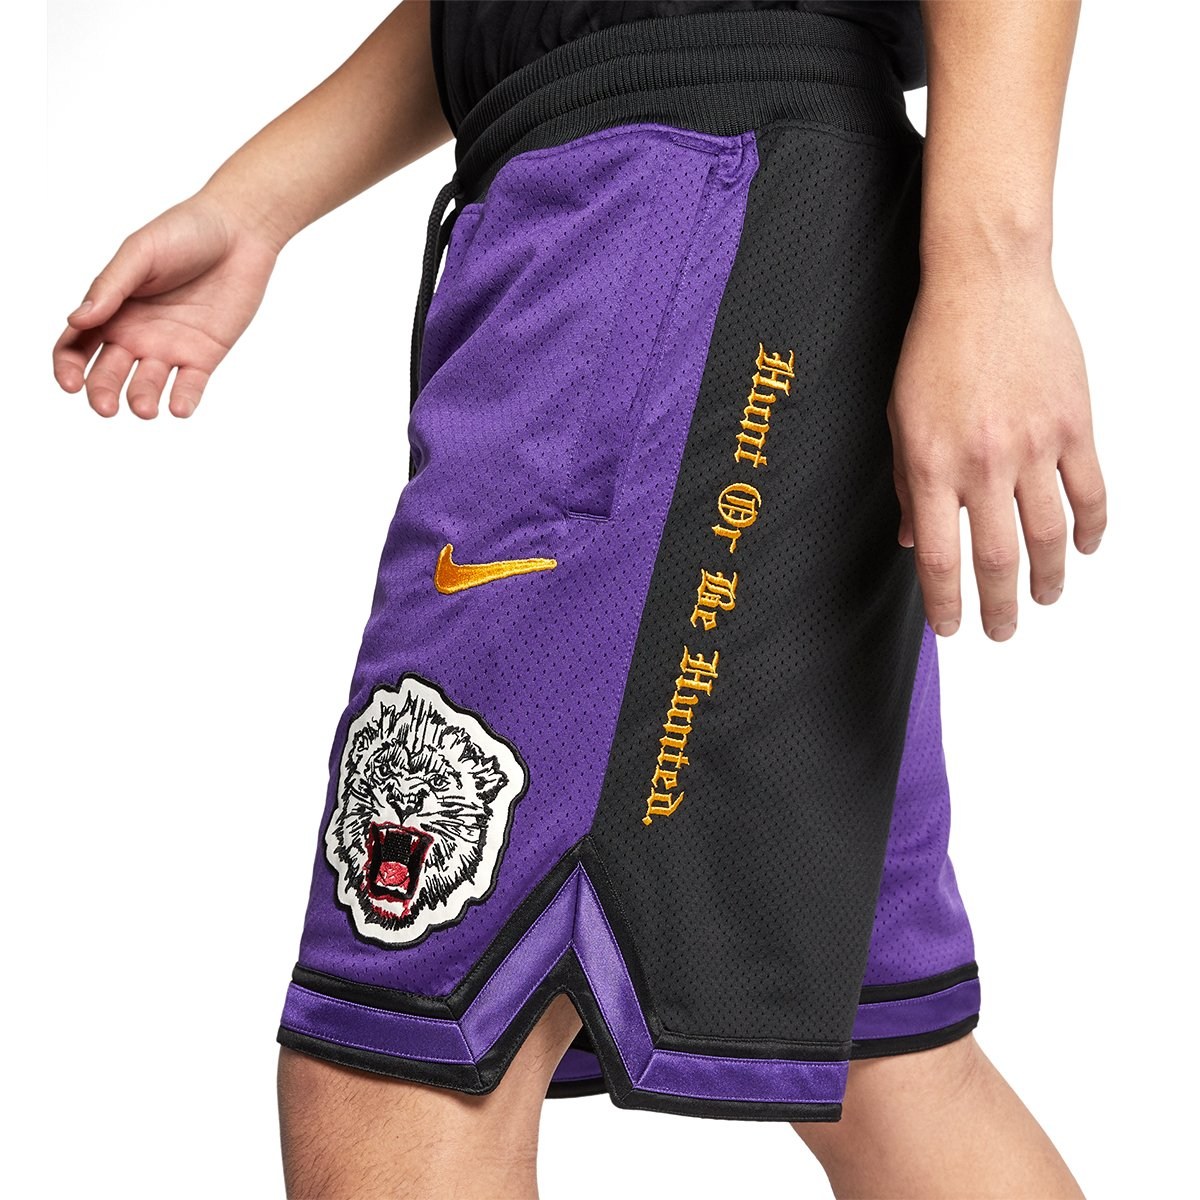 8716739b Pick up the atmos x Nike LeBron DNA basketball shorts for $152 + free  shipping. https://bit.ly/2VyX1zS pic.twitter.com/KHRknUwhzJ